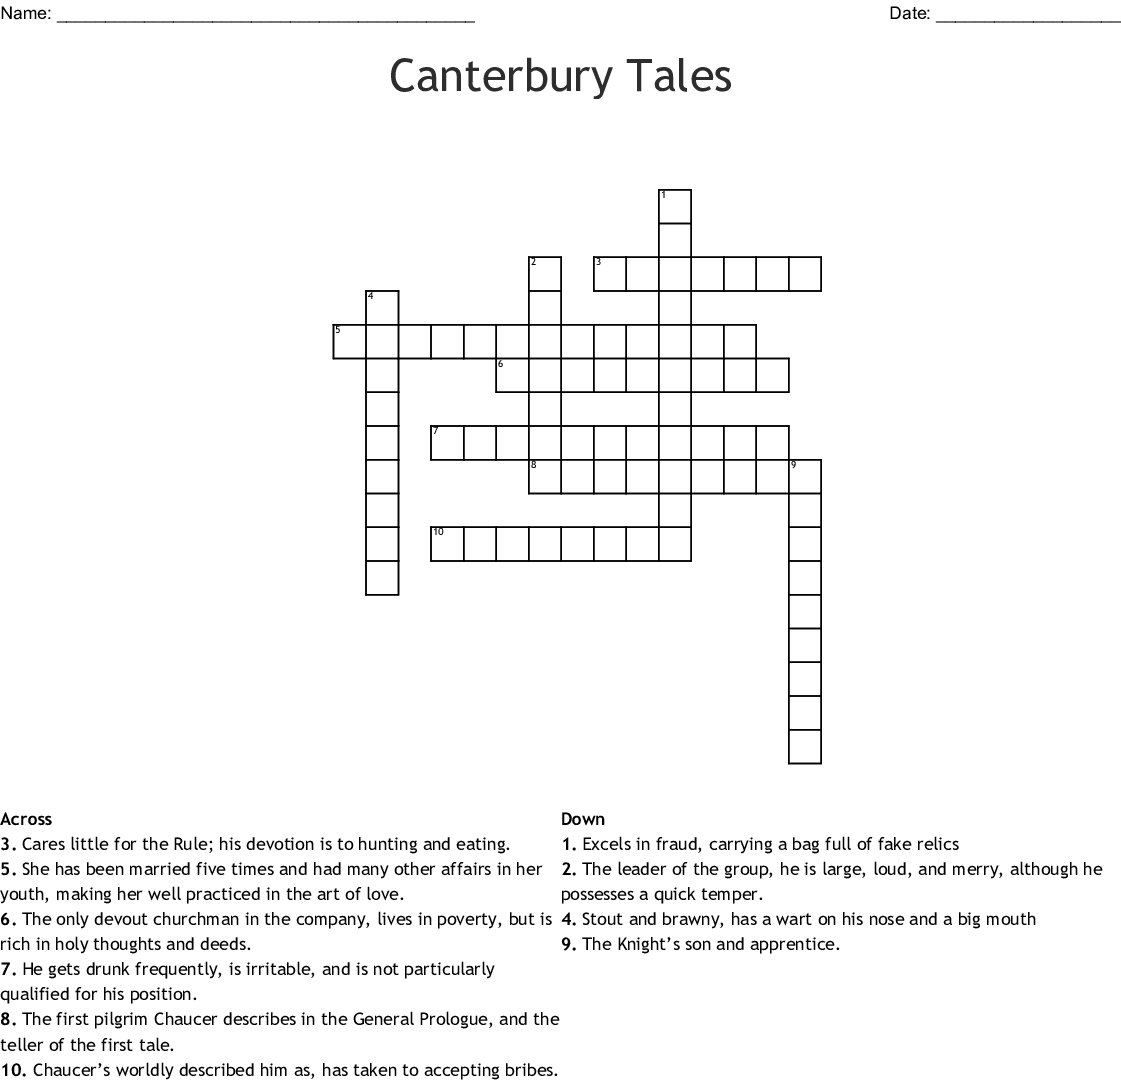 The Canterbury Tales Word Search